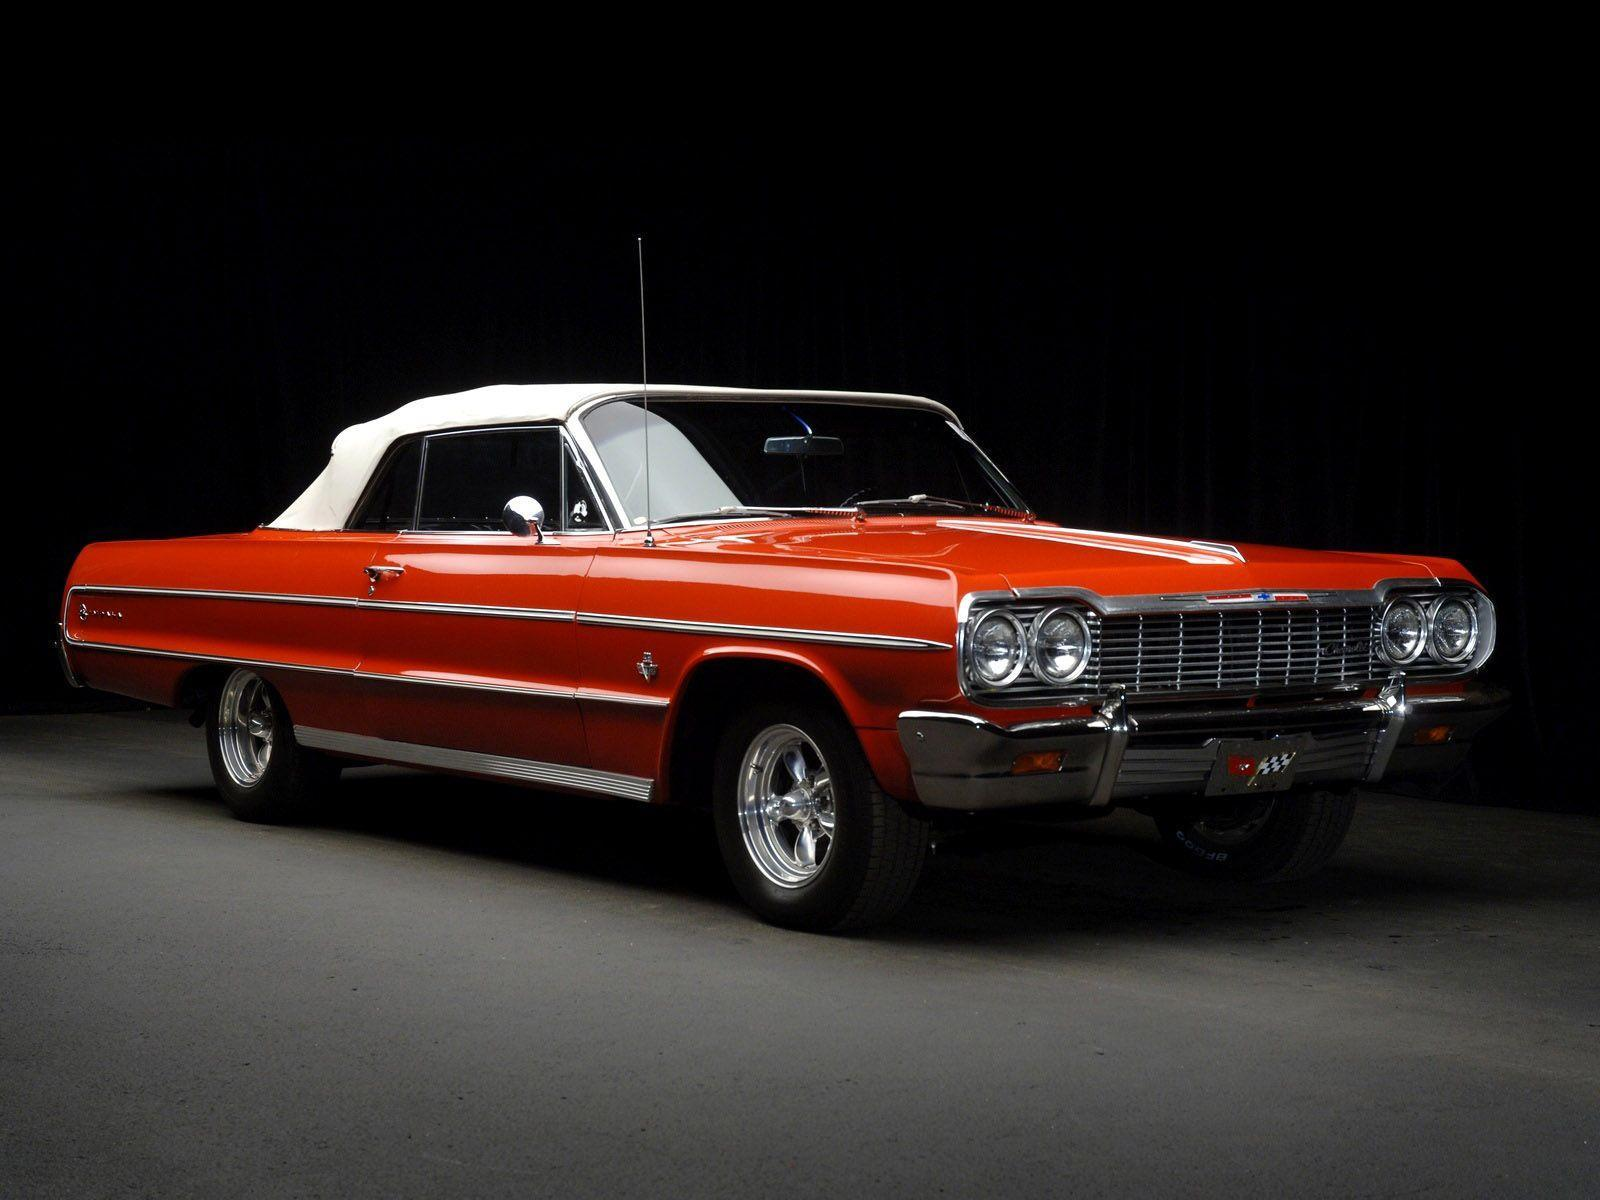 Chevrolet Impala #248659 | Full HD Widescreen wallpapers for ...